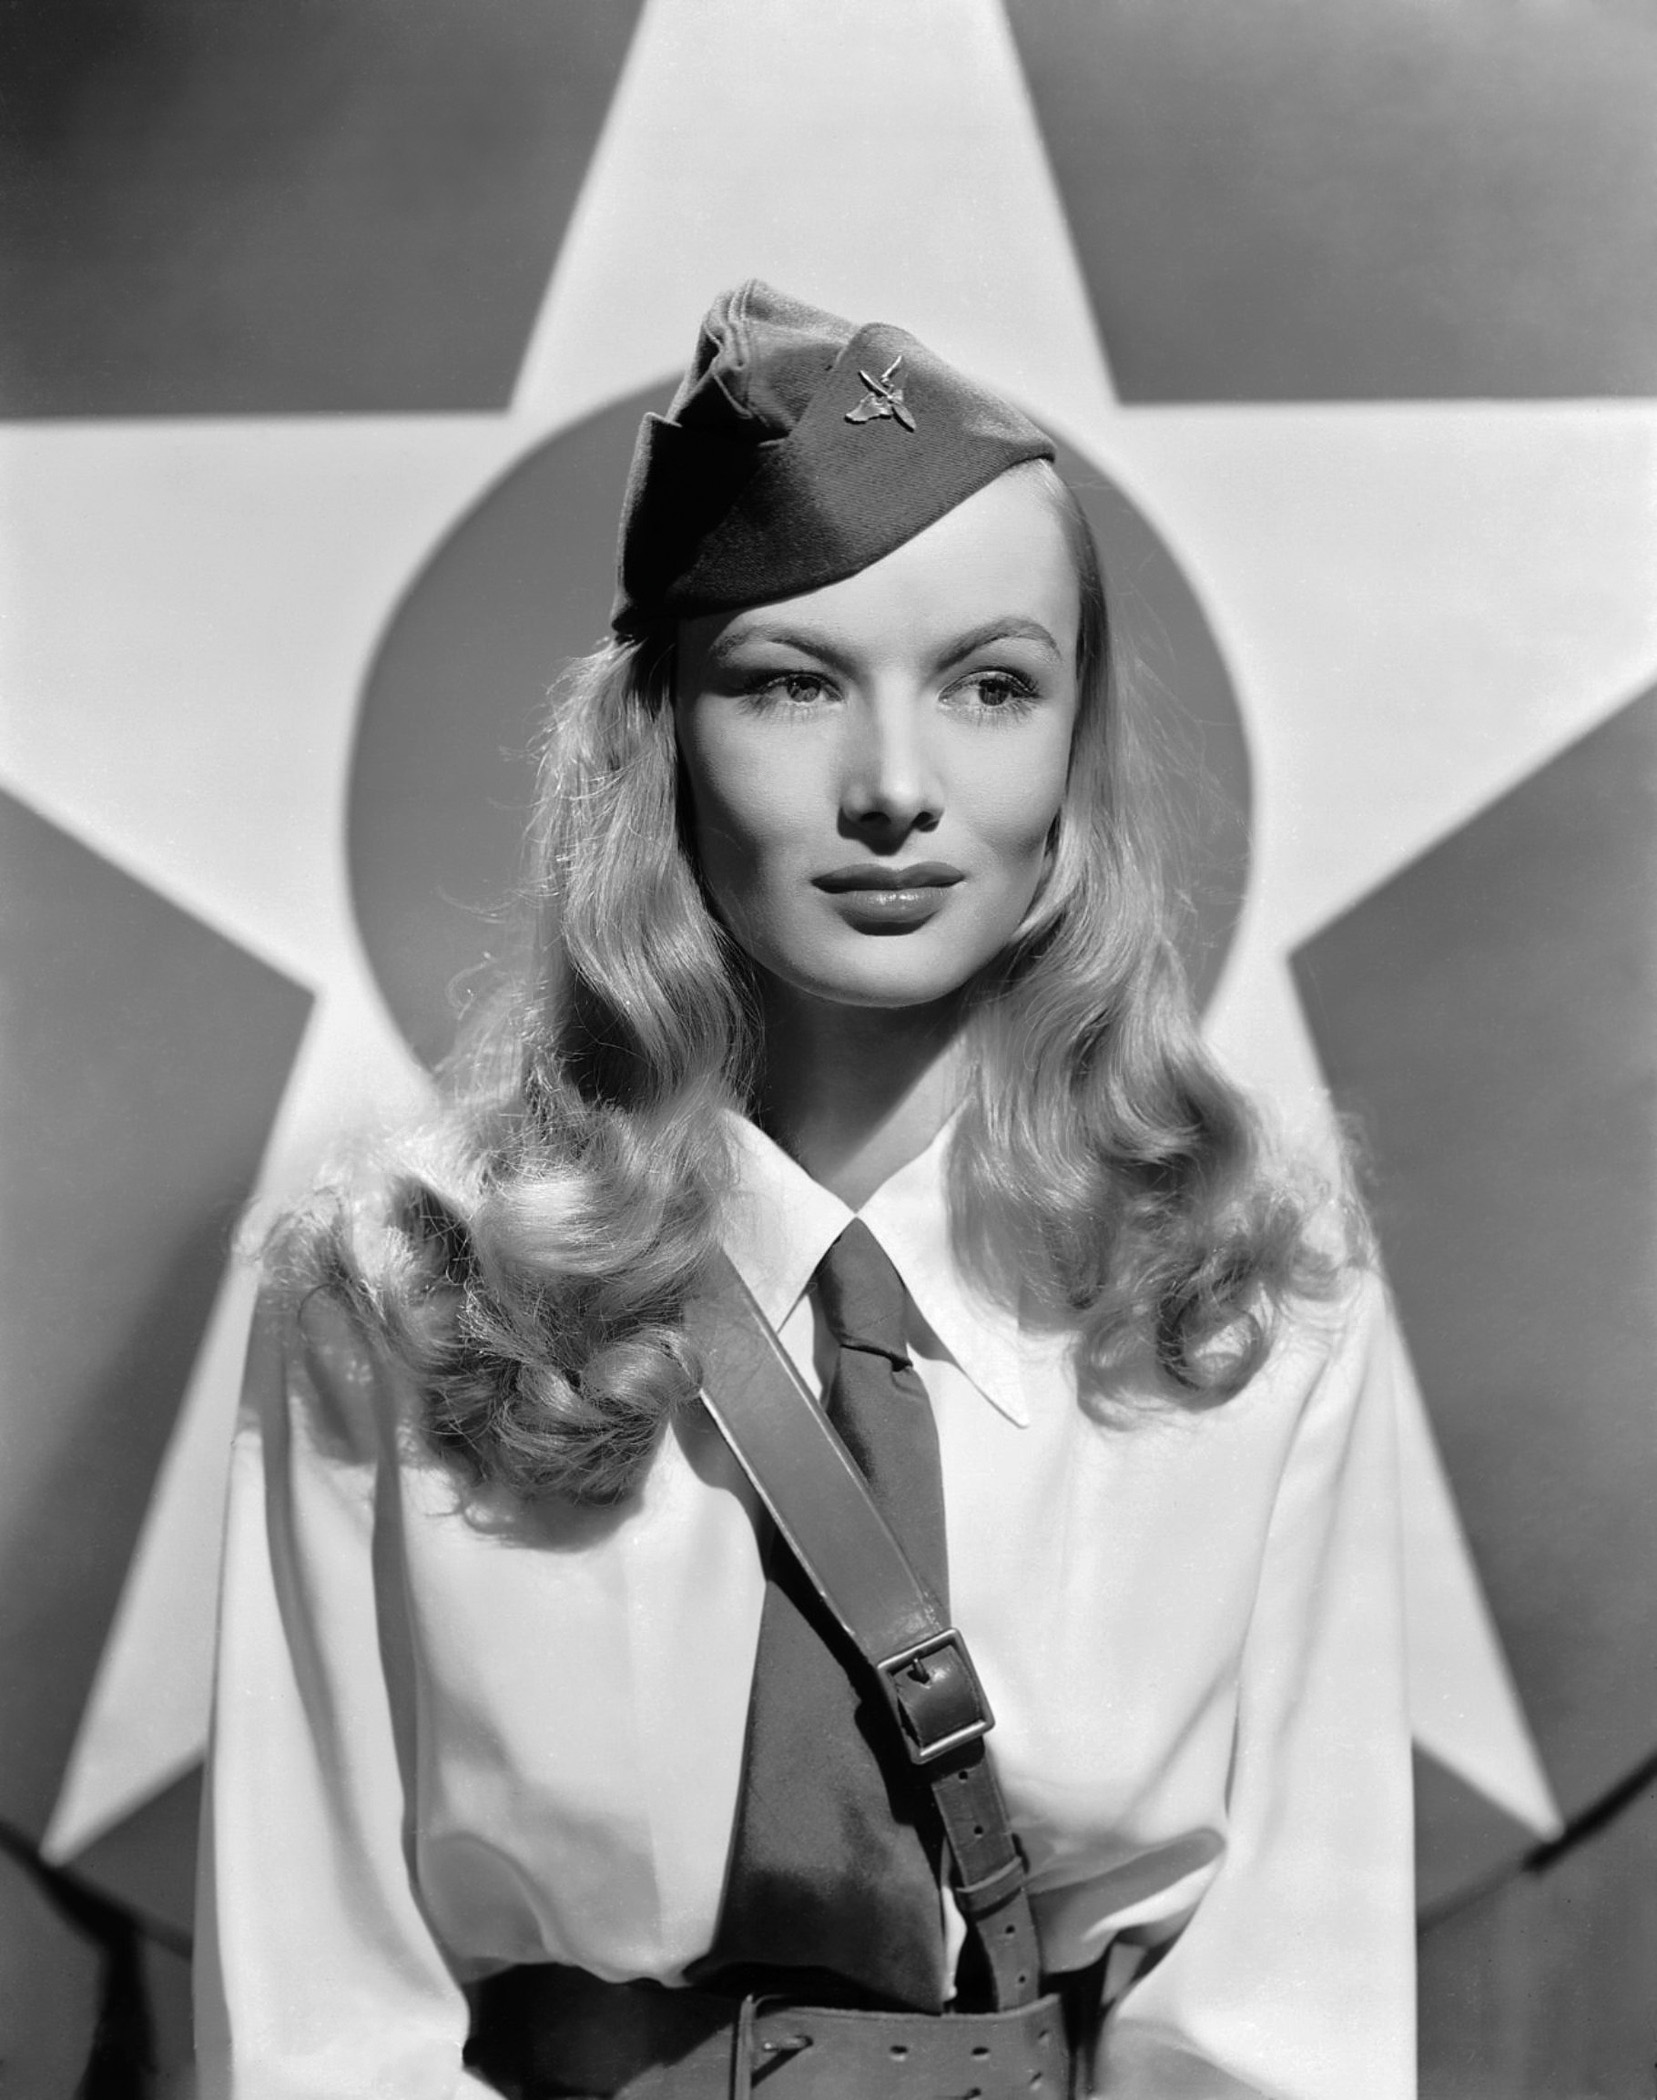 veronica lake hairstyleveronica lake tumblr, veronica lake style, veronica lake height, veronica lake old, veronica lake wings, veronica lake daughter, veronica lake interview, veronica lake style dress, veronica lake jessica rabbit, veronica lake movie, veronica lake and alan ladd, veronica lake photos, veronica lake hairstyle, veronica lake 1970, veronica lake wallpaper, veronica lake pictures, veronica lake hair tutorial, veronica lake height and weight, veronica lake airplane, veronica lake last photo